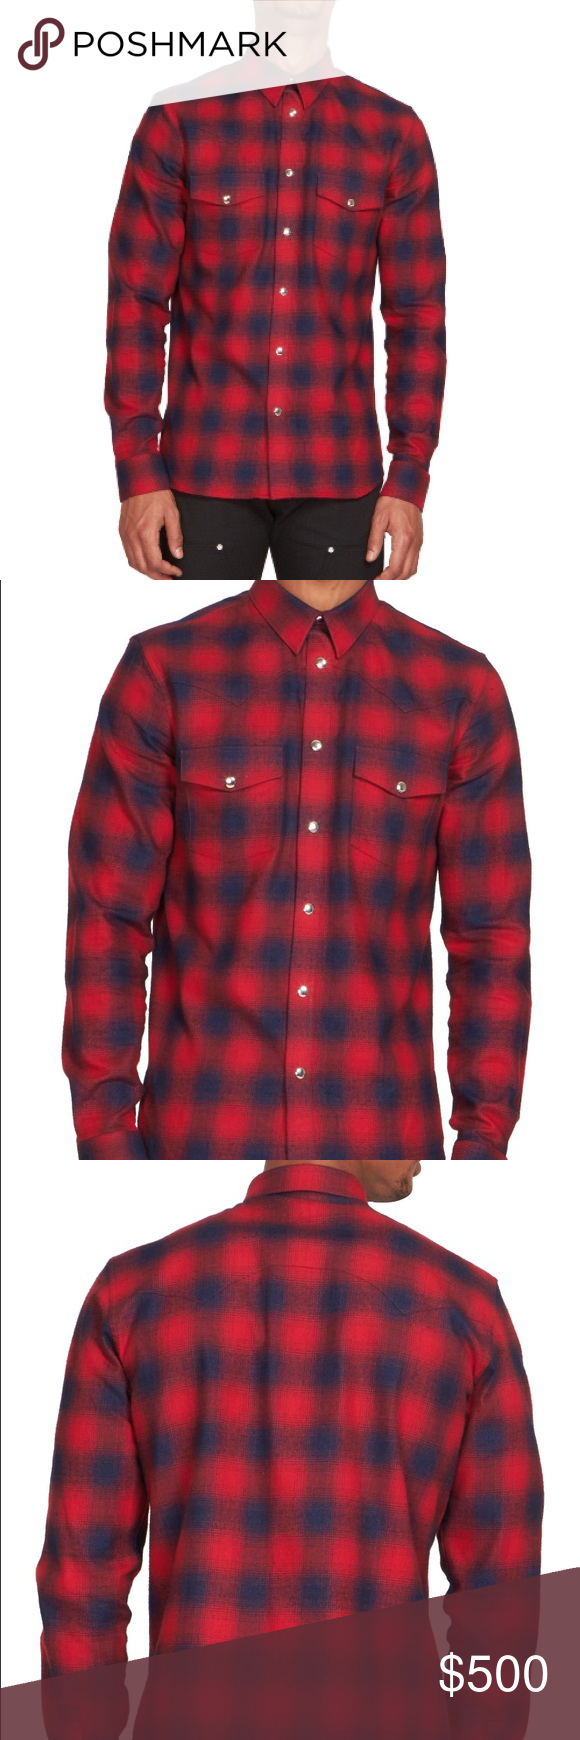 358ffa27ab1e Men s givenchy plaid shirt Men s givenchy plaid shirt brand new with tags  from saks Givenchy Shirts Casual Button Down Shirts